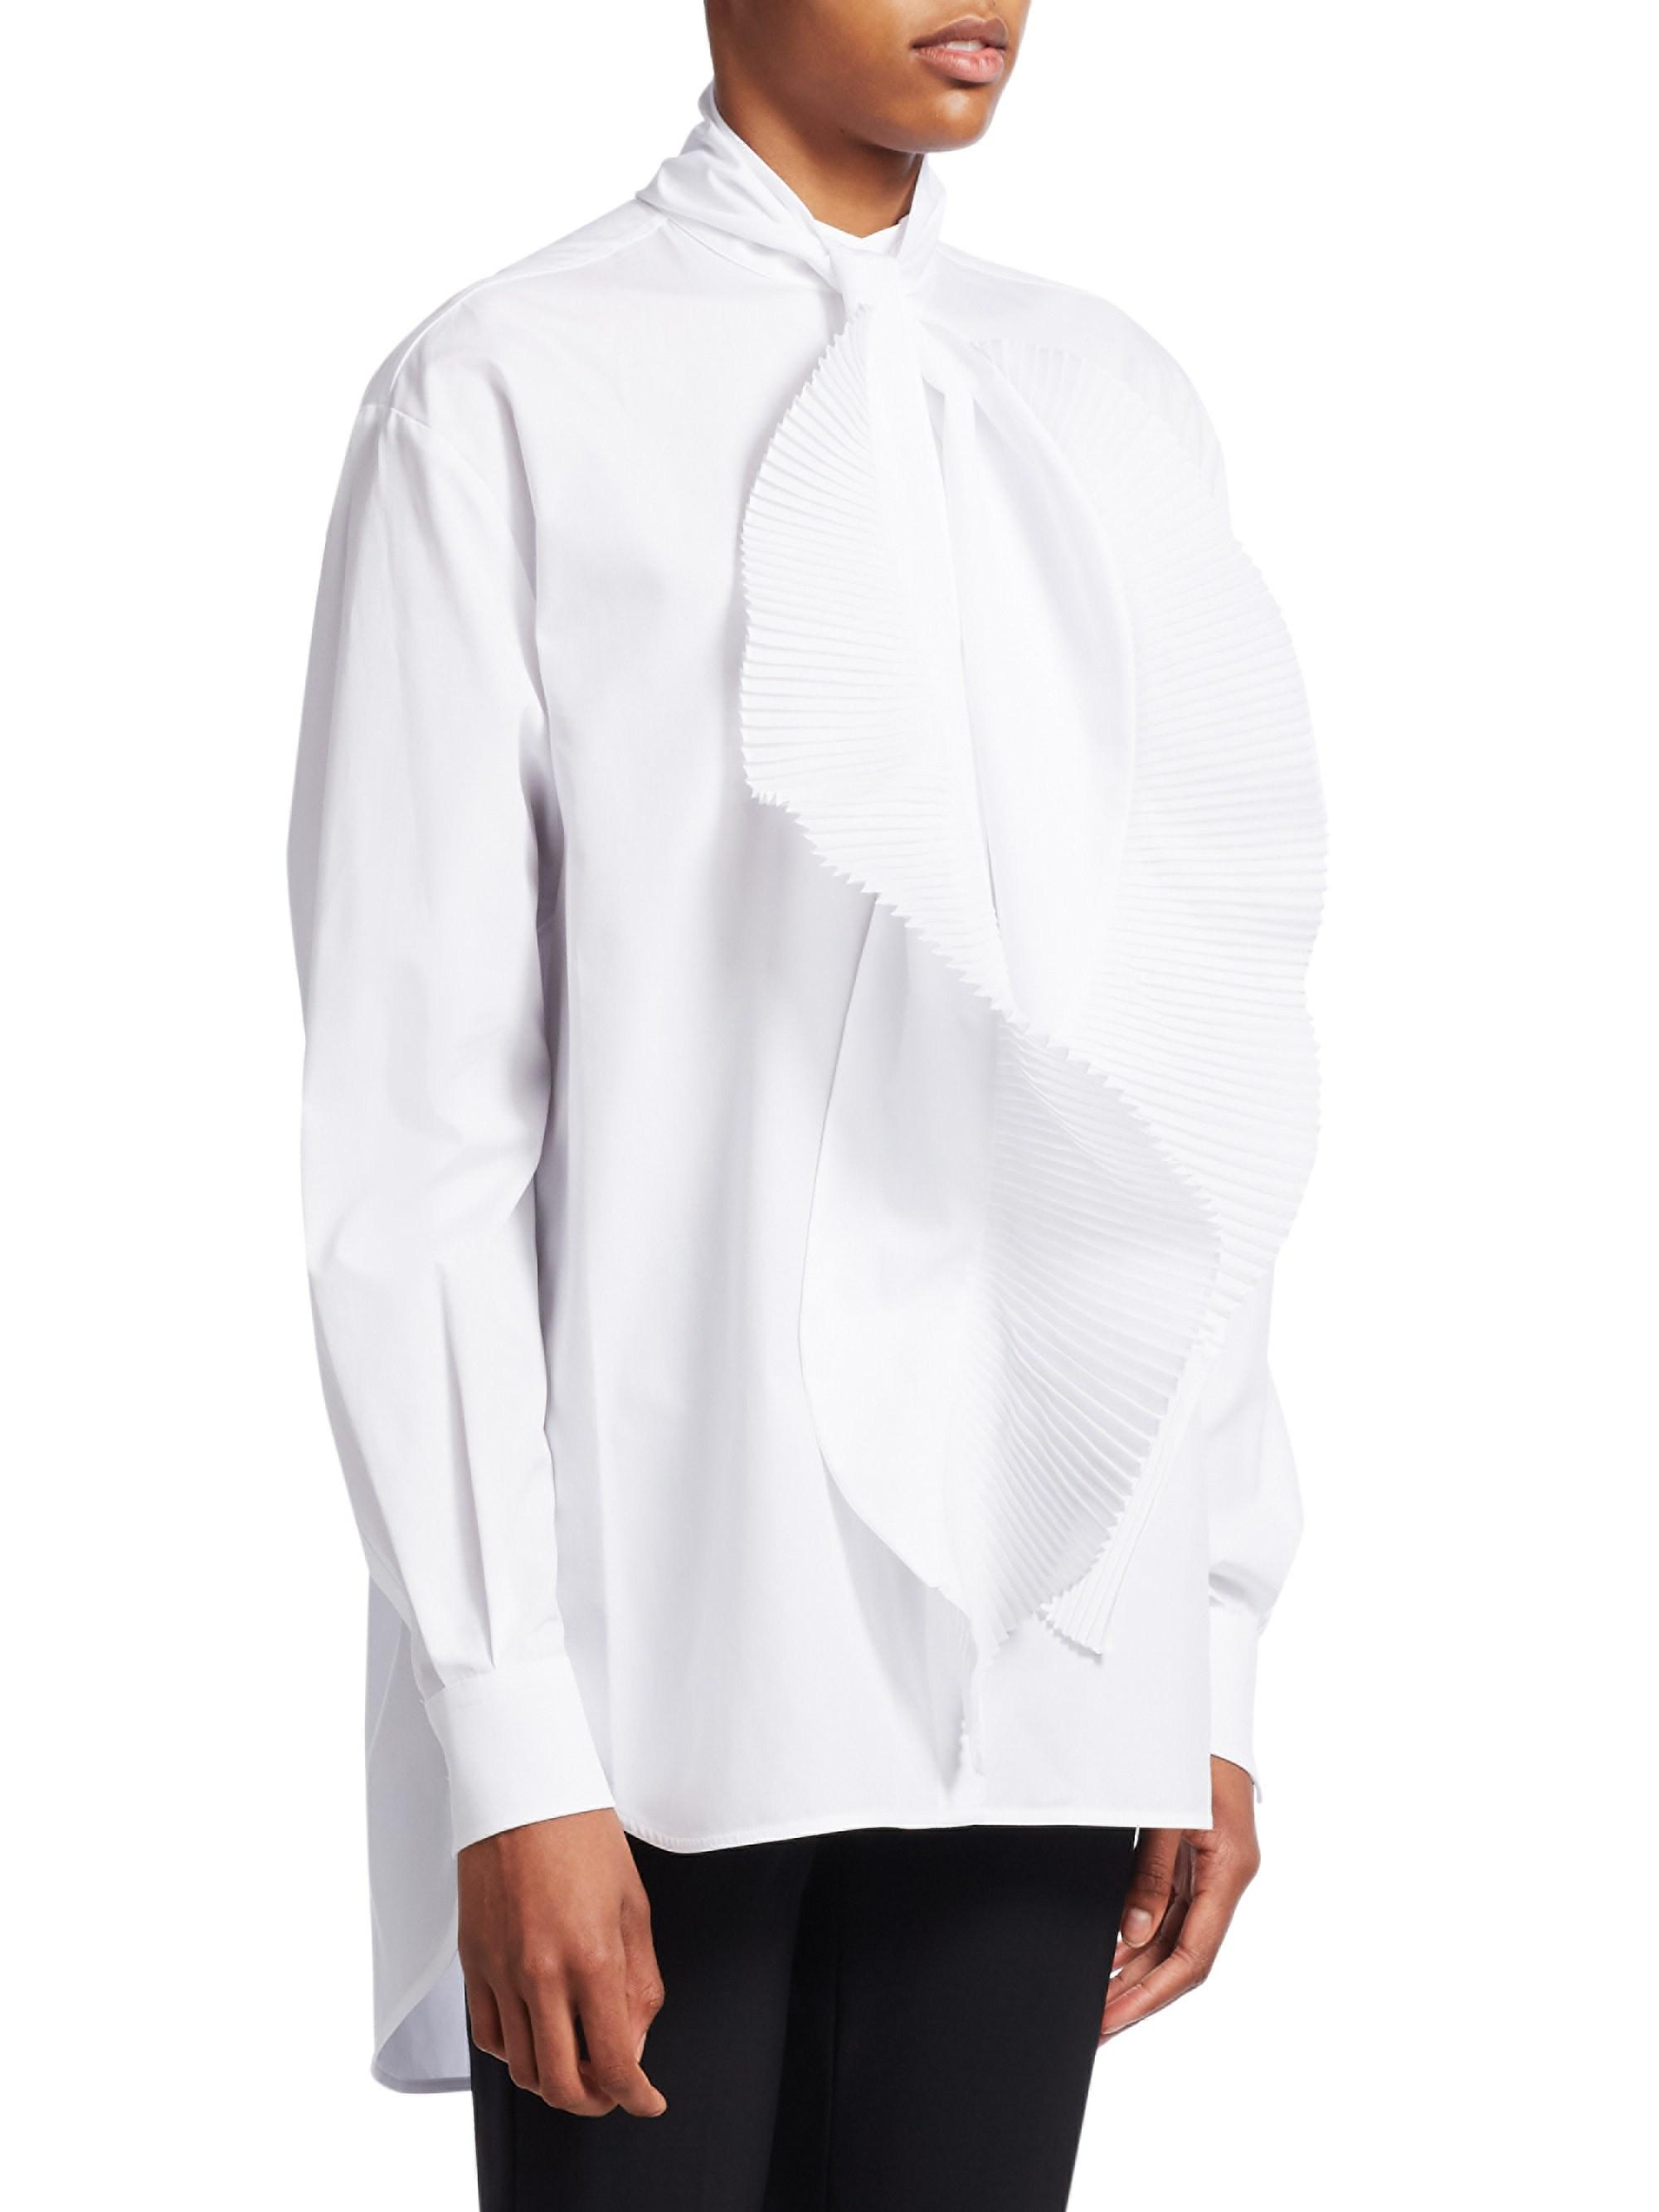 0f135a46602b50 Givenchy. Women's Silk Crepe De Chine Blouse - White - Size 38 (6). $1,350  From Saks Fifth Avenue